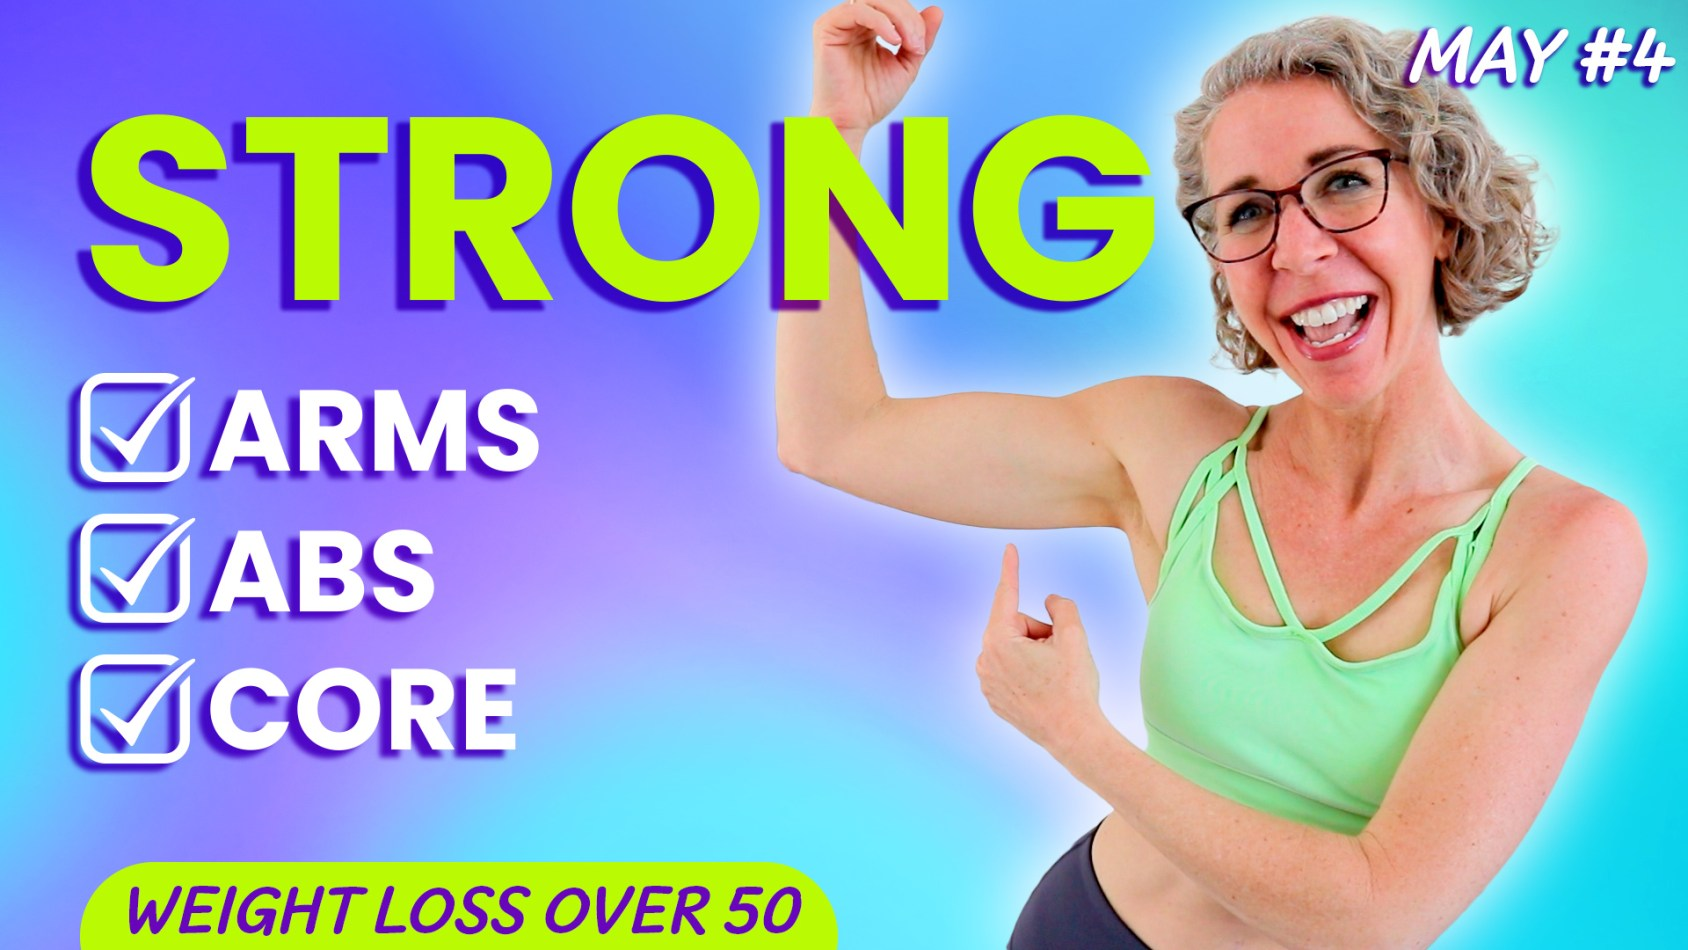 ARM TONING WALK for Women over 50, No Equipment Needed! ???? MAY 4